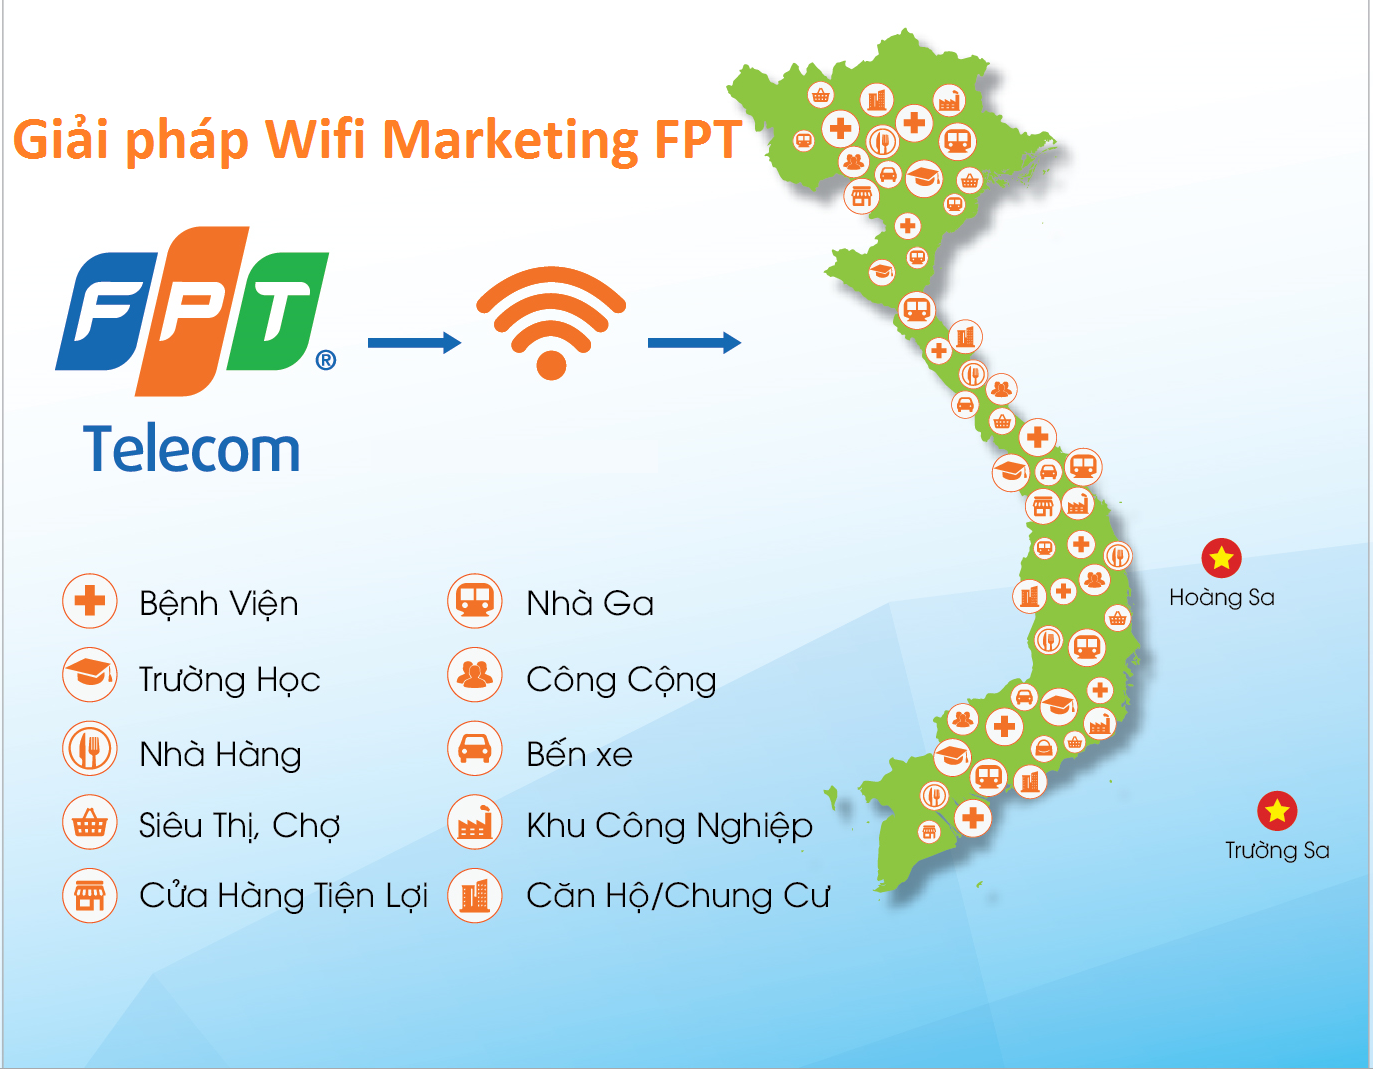 Giai-phap-internet-wifi-marketing-fpt